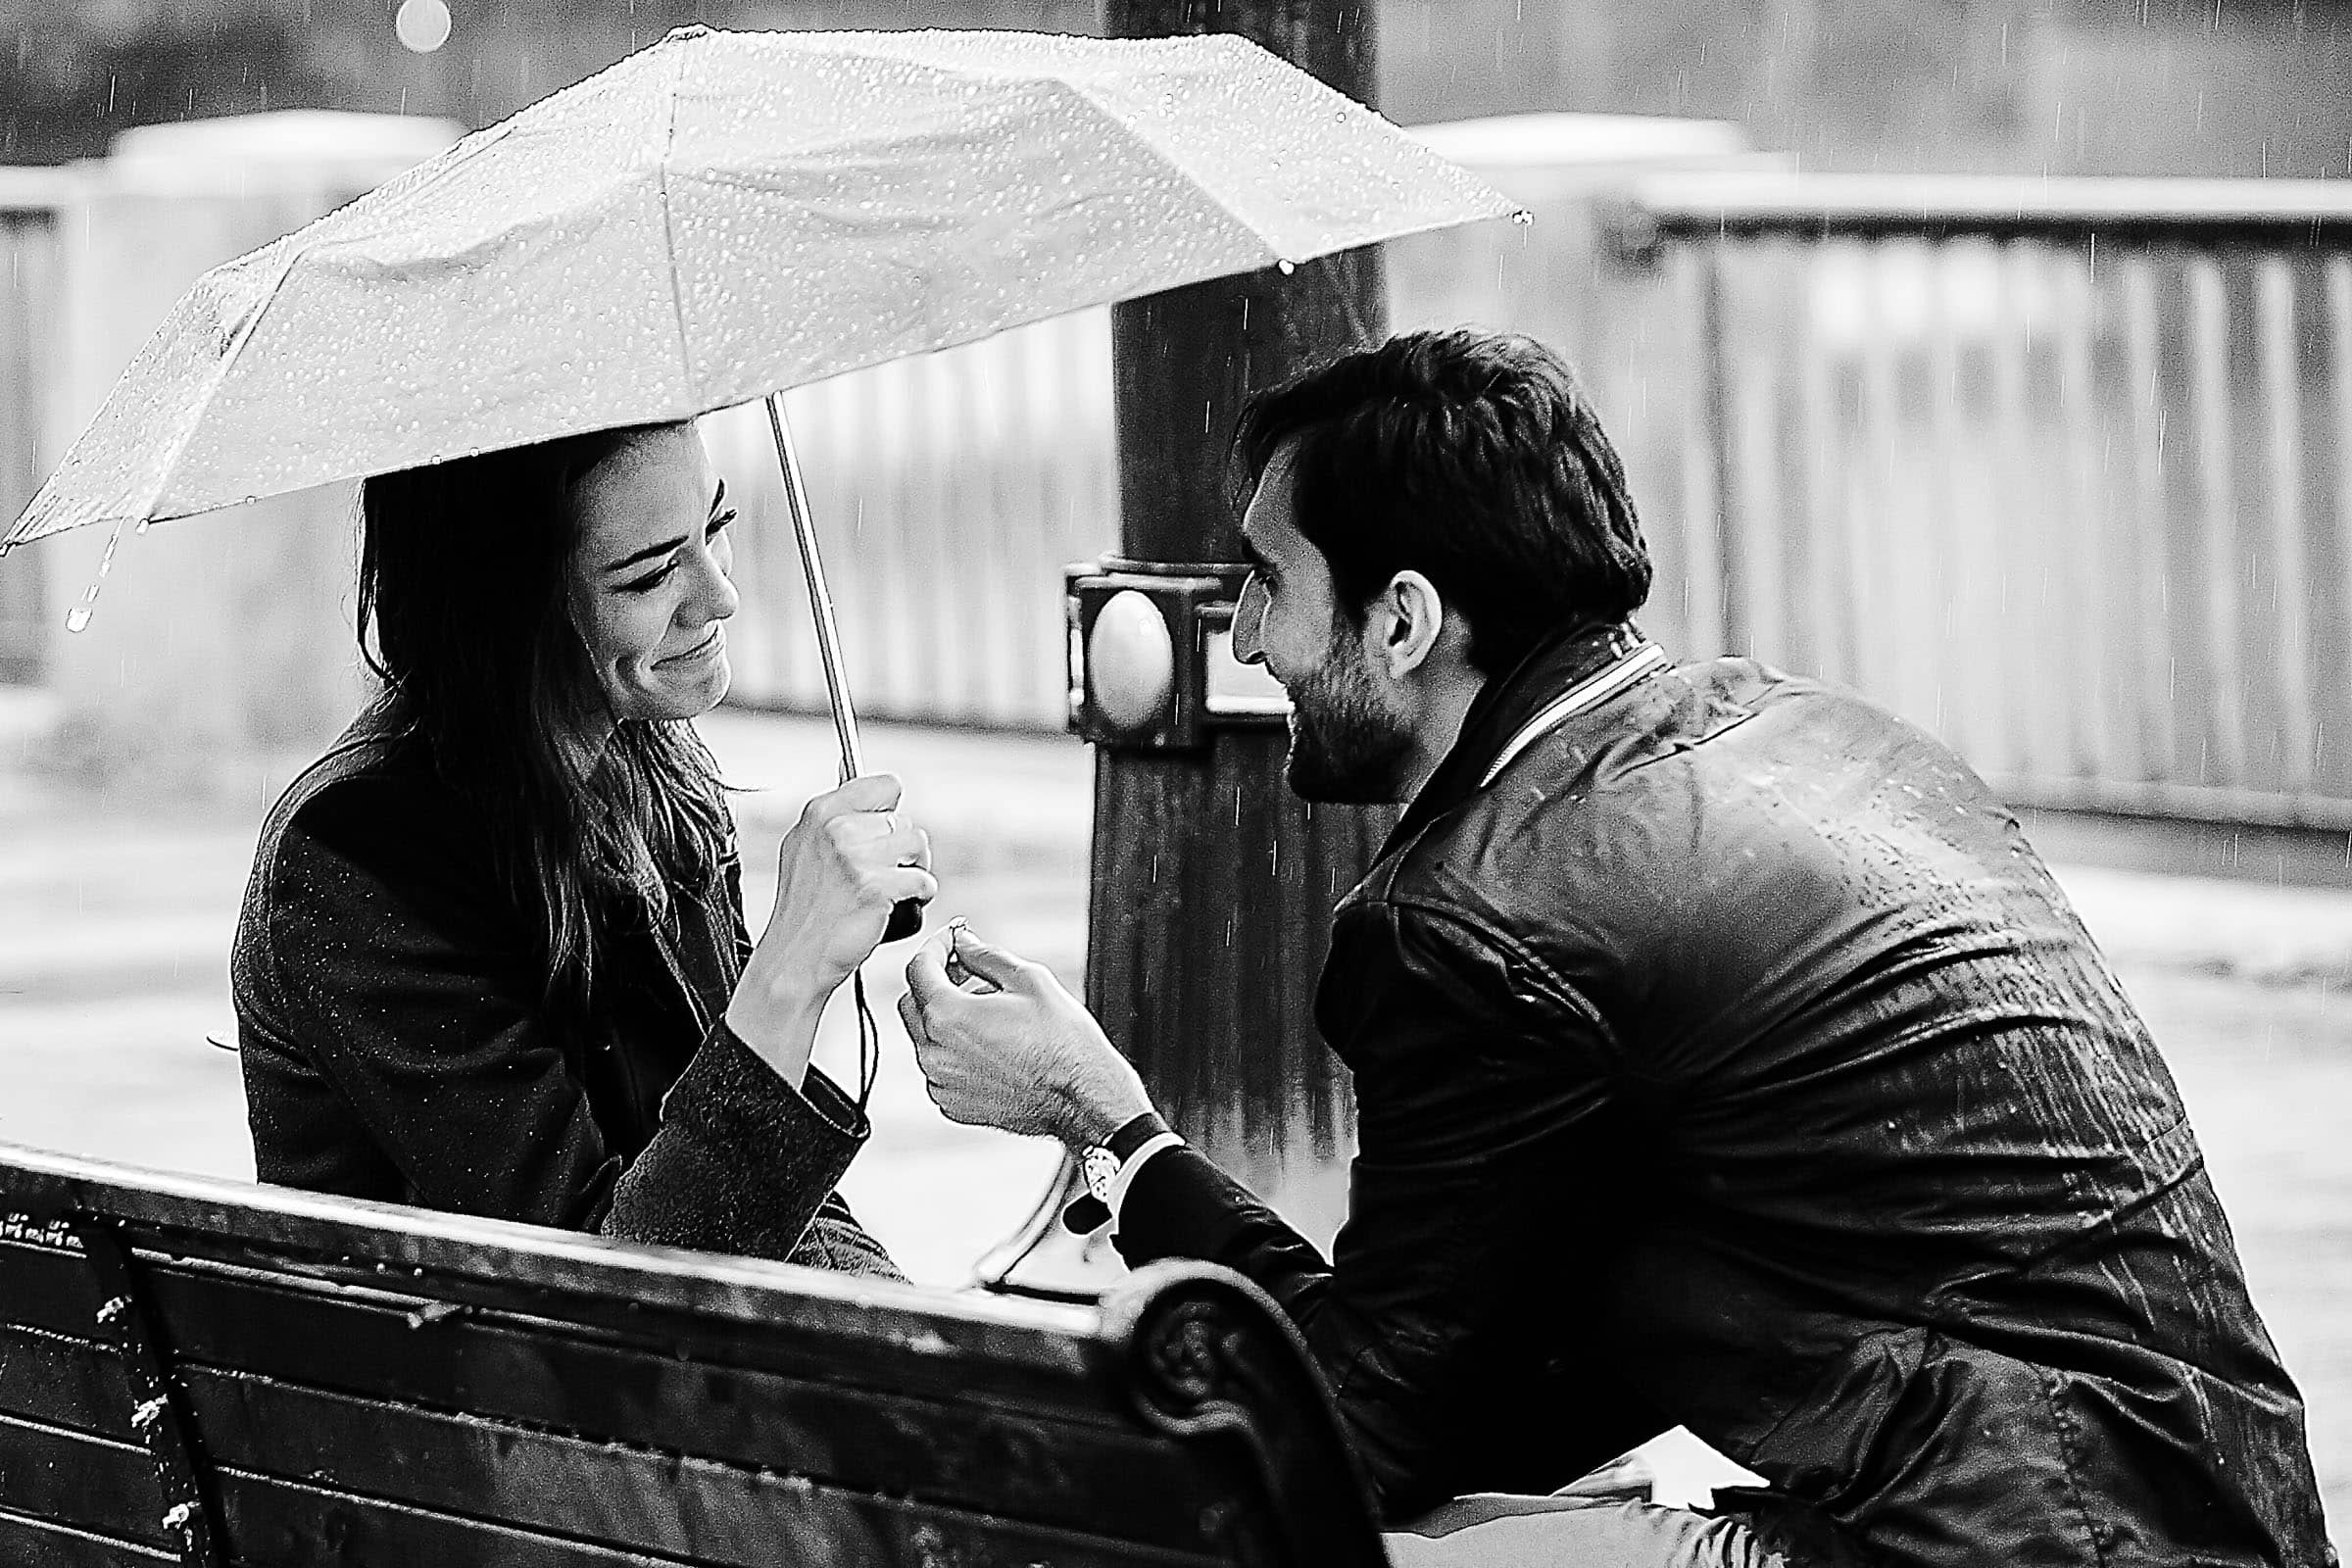 A powerful black and white photo of a Portland engagement proposal on the Portland waterfront park